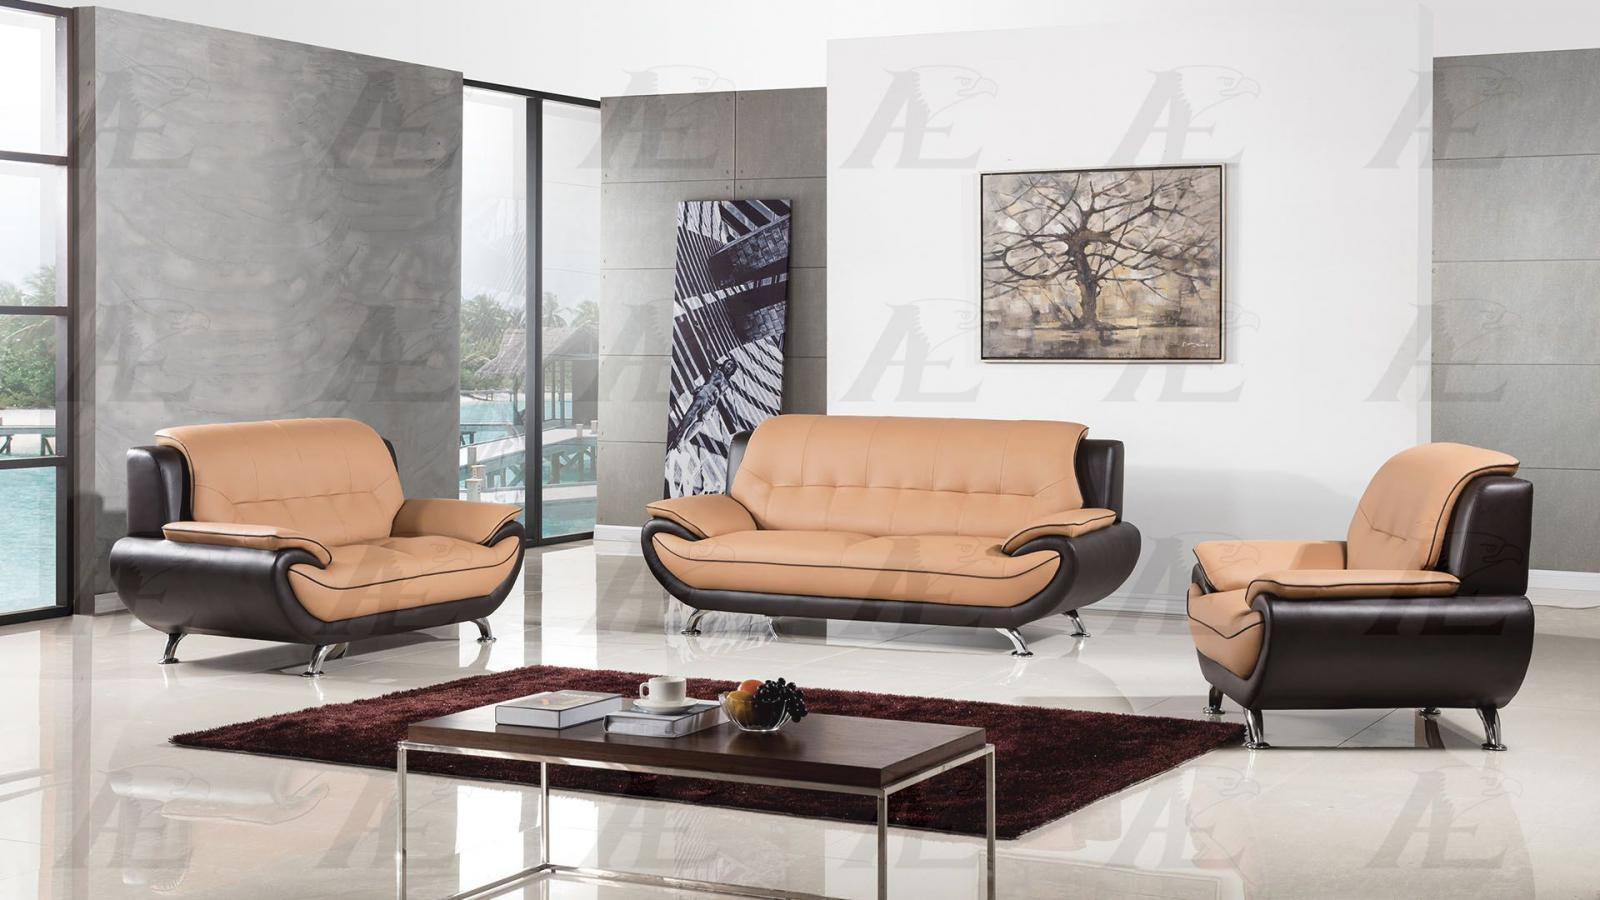 American Eagle Furniture AE208 Sofa Loveseat and Chair Contemporary Modern  3pc